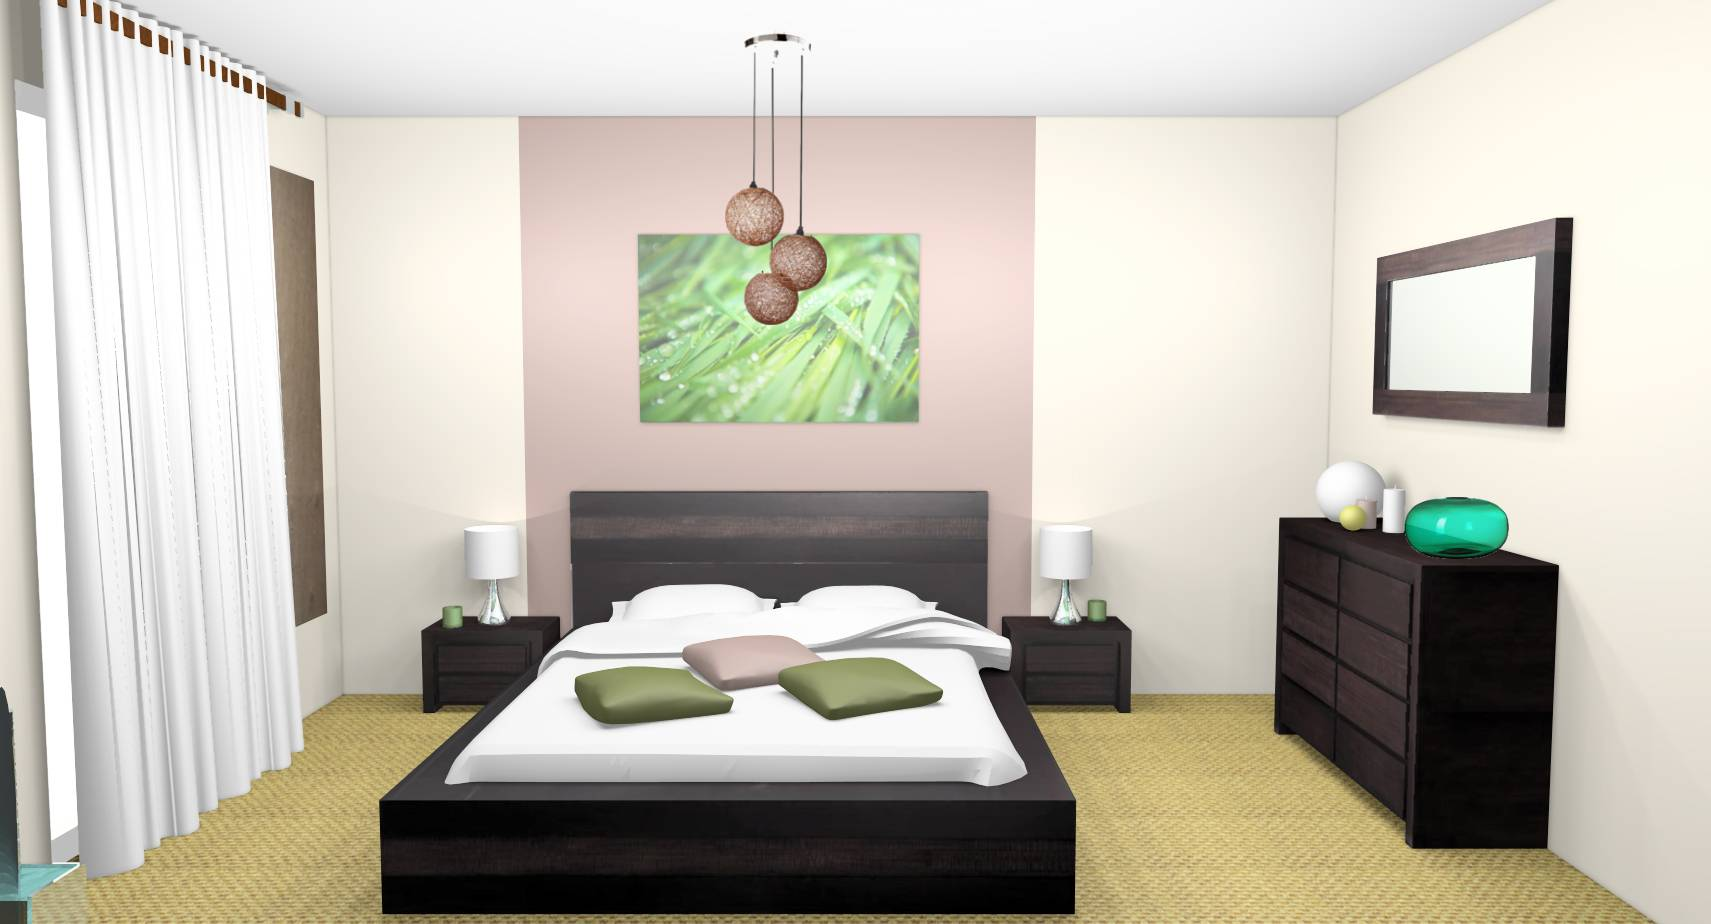 D co chambre zen adulte for Decoration de chambre a coucher adulte